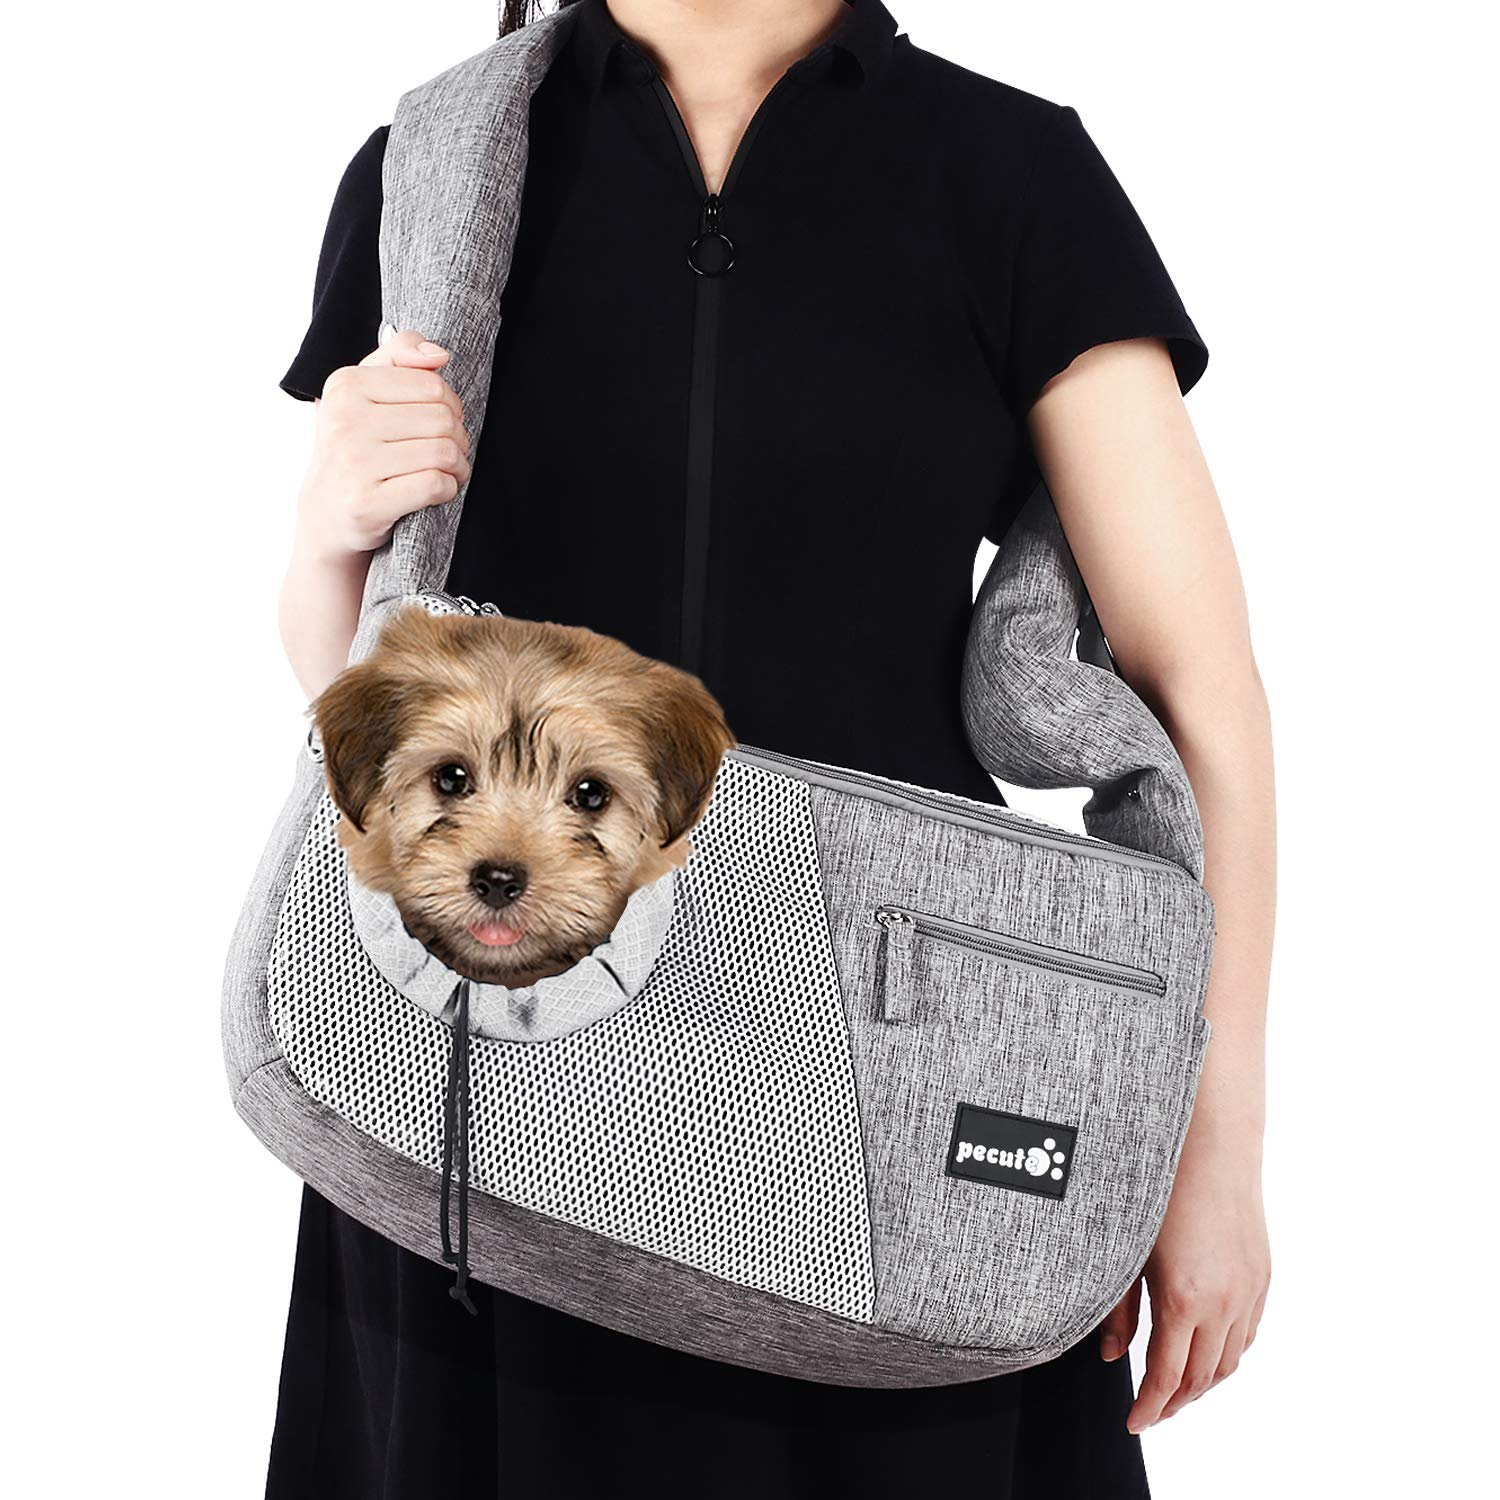 Pecute Pet Carrier Small Cat Dog Sling Carrier with Breathable Window Hand Free Sling Adjustable Padded Strap Tote Bag Shoulder Bag for Outdoor Travel Subway by Pecute